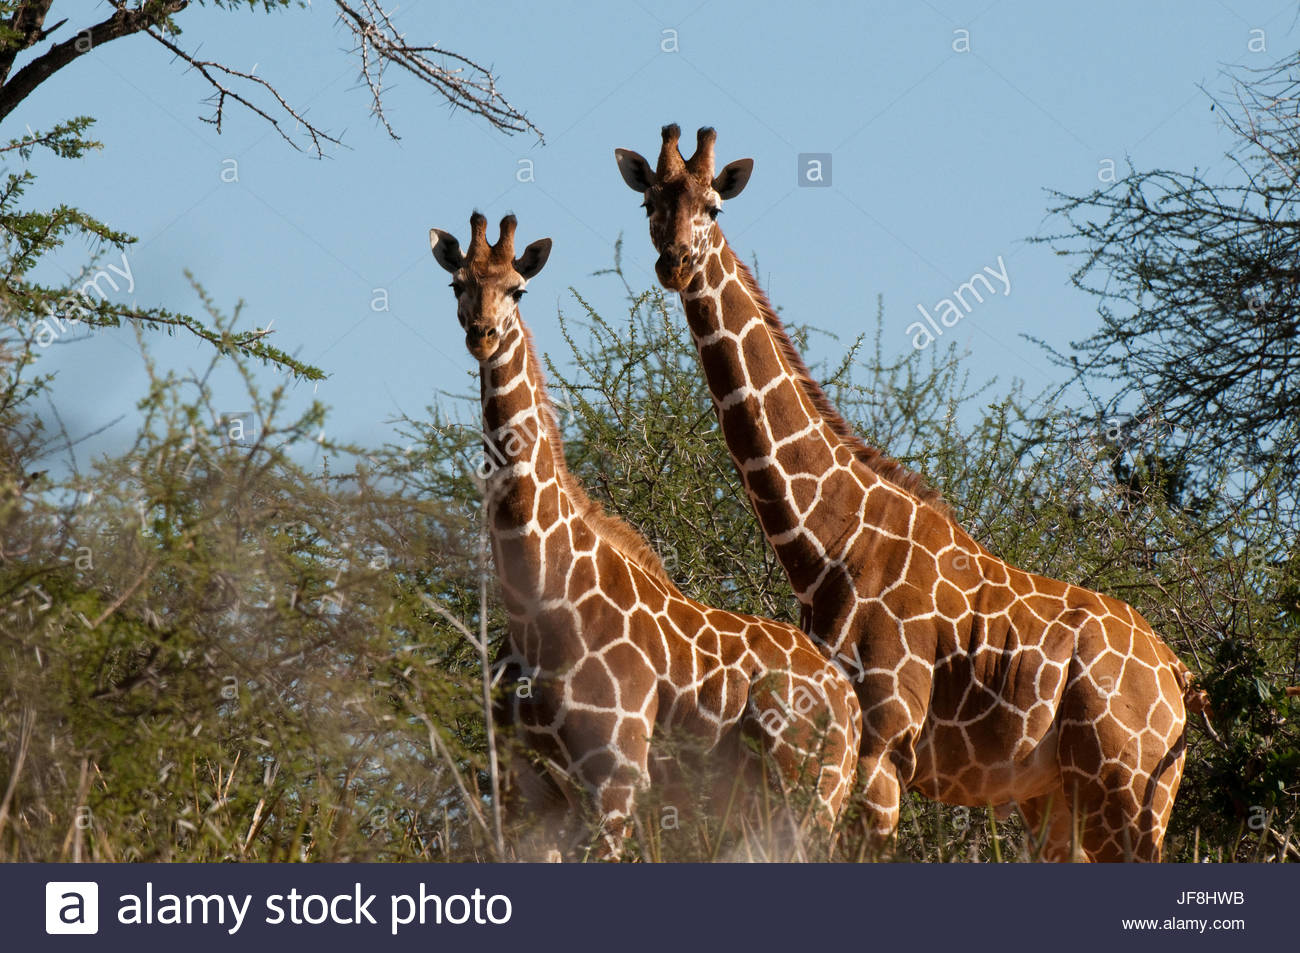 Two reticulated giraffes, Giraffa camelopardalis reticulata, among thorny acacia trees. - Stock Image